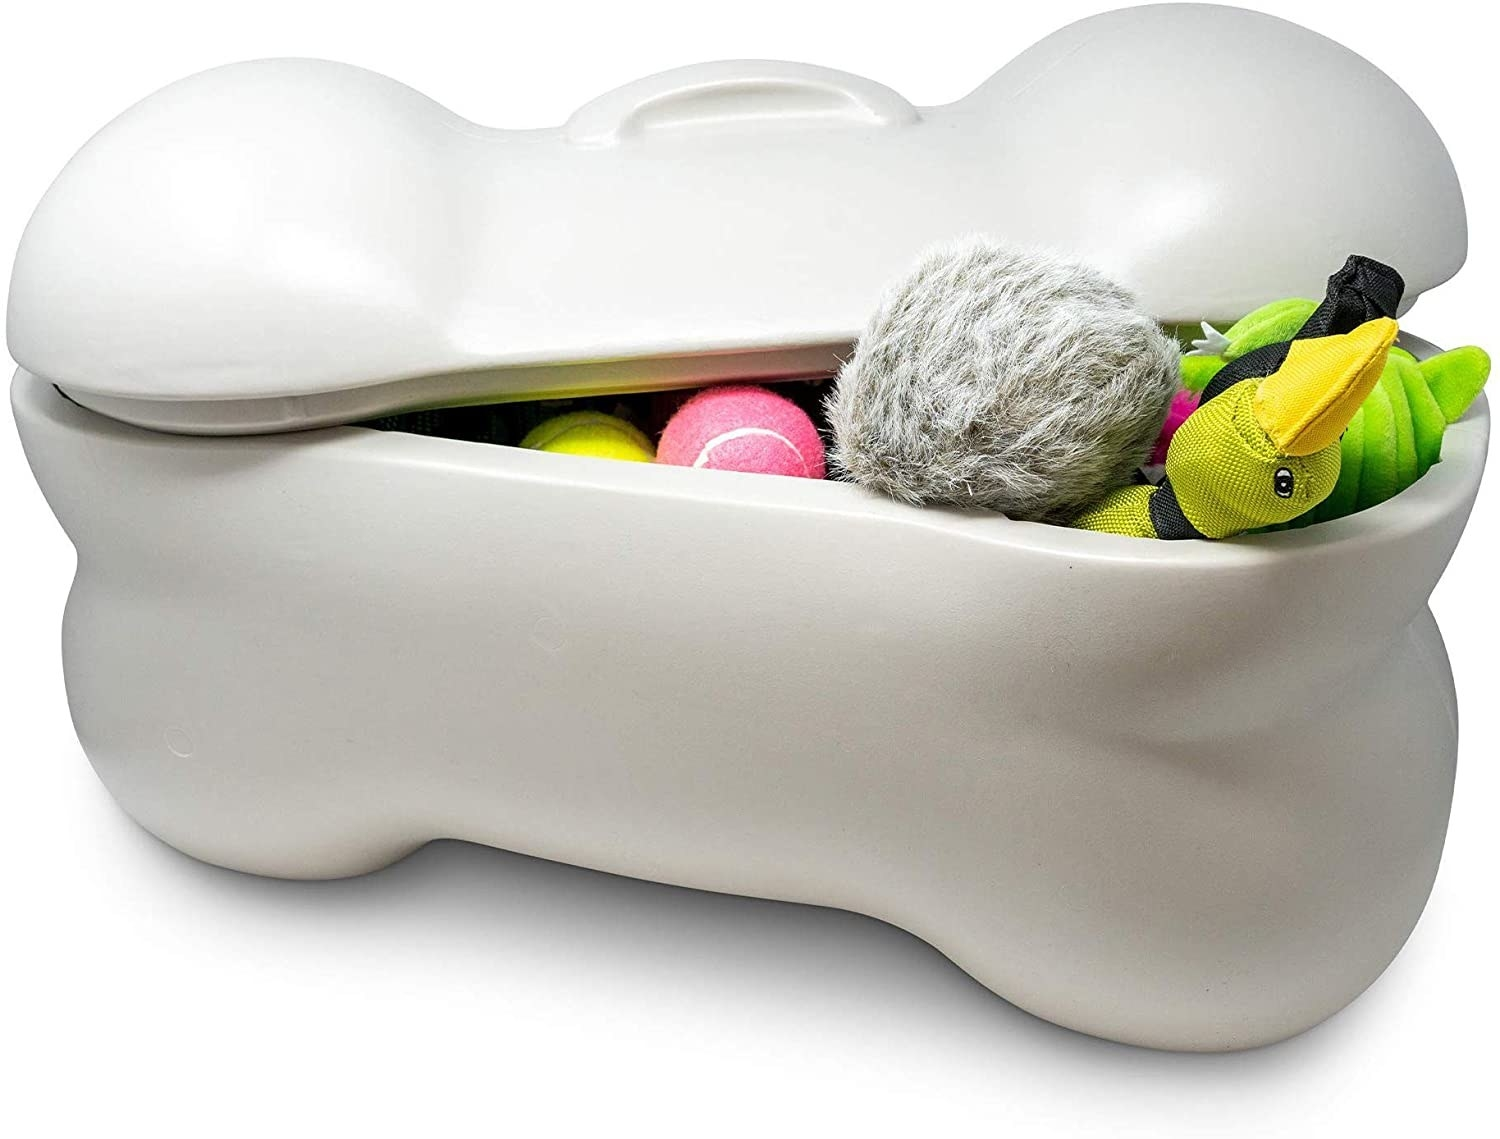 An off-white, bone-shaped plastic storage bin with lid open to reveal dog toys inside